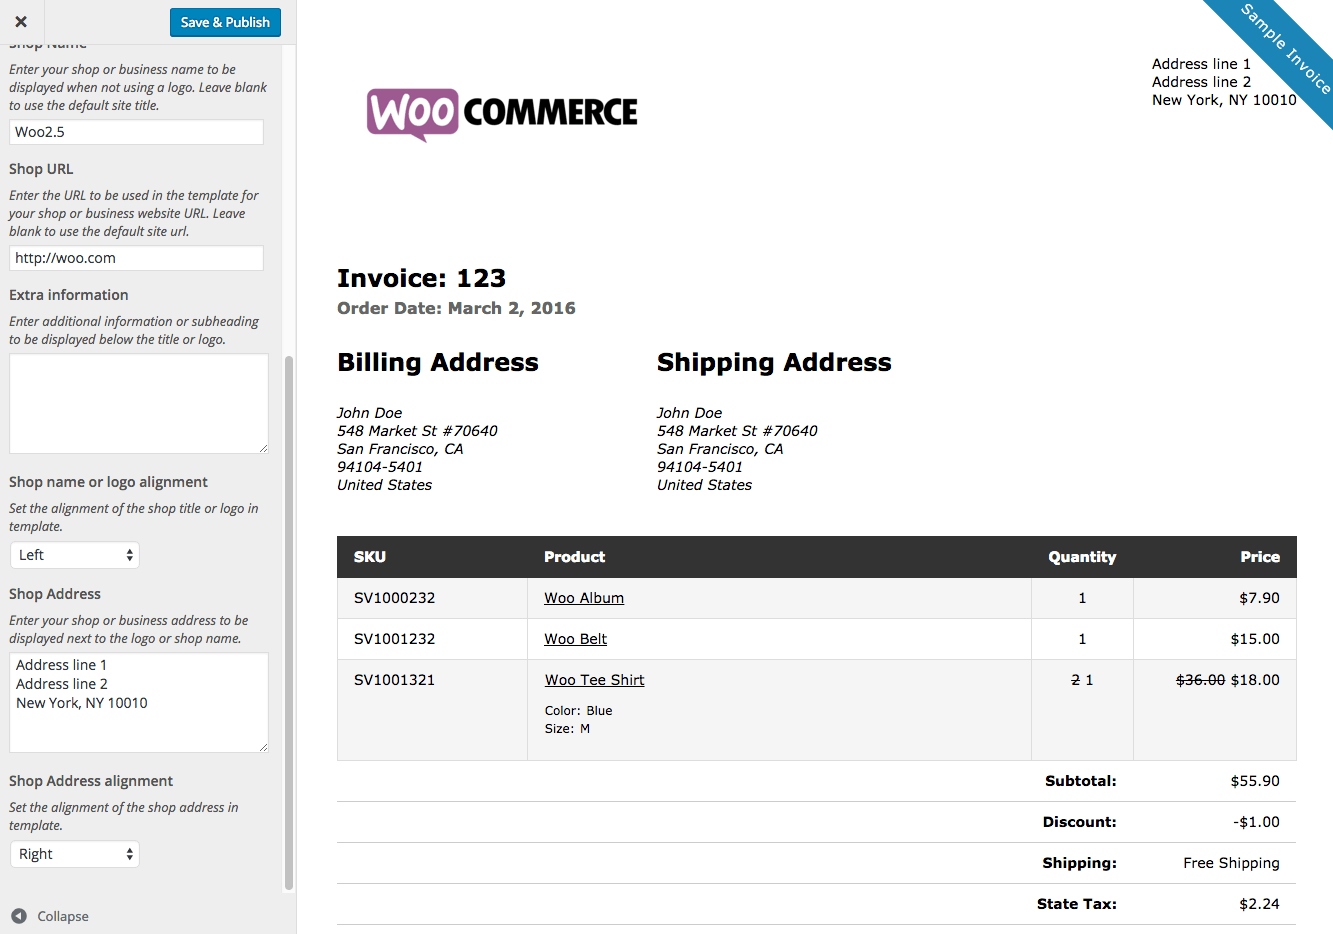 Darkfaderus  Fascinating Woocommerce Print Invoices Amp Packing Lists  Woocommerce Docs With Lovely Woocommerce Print Invoices  Packing Lists Customizer With Beauteous Pmc Tax Receipt Also This Is To Acknowledge The Receipt Of Your Email In Addition Spirit Airlines Baggage Receipt And Tracking Number On Usps Receipt As Well As Bill Receipt Template Free Additionally Receipt Auf Deutsch From Docswoocommercecom With Darkfaderus  Lovely Woocommerce Print Invoices Amp Packing Lists  Woocommerce Docs With Beauteous Woocommerce Print Invoices  Packing Lists Customizer And Fascinating Pmc Tax Receipt Also This Is To Acknowledge The Receipt Of Your Email In Addition Spirit Airlines Baggage Receipt From Docswoocommercecom